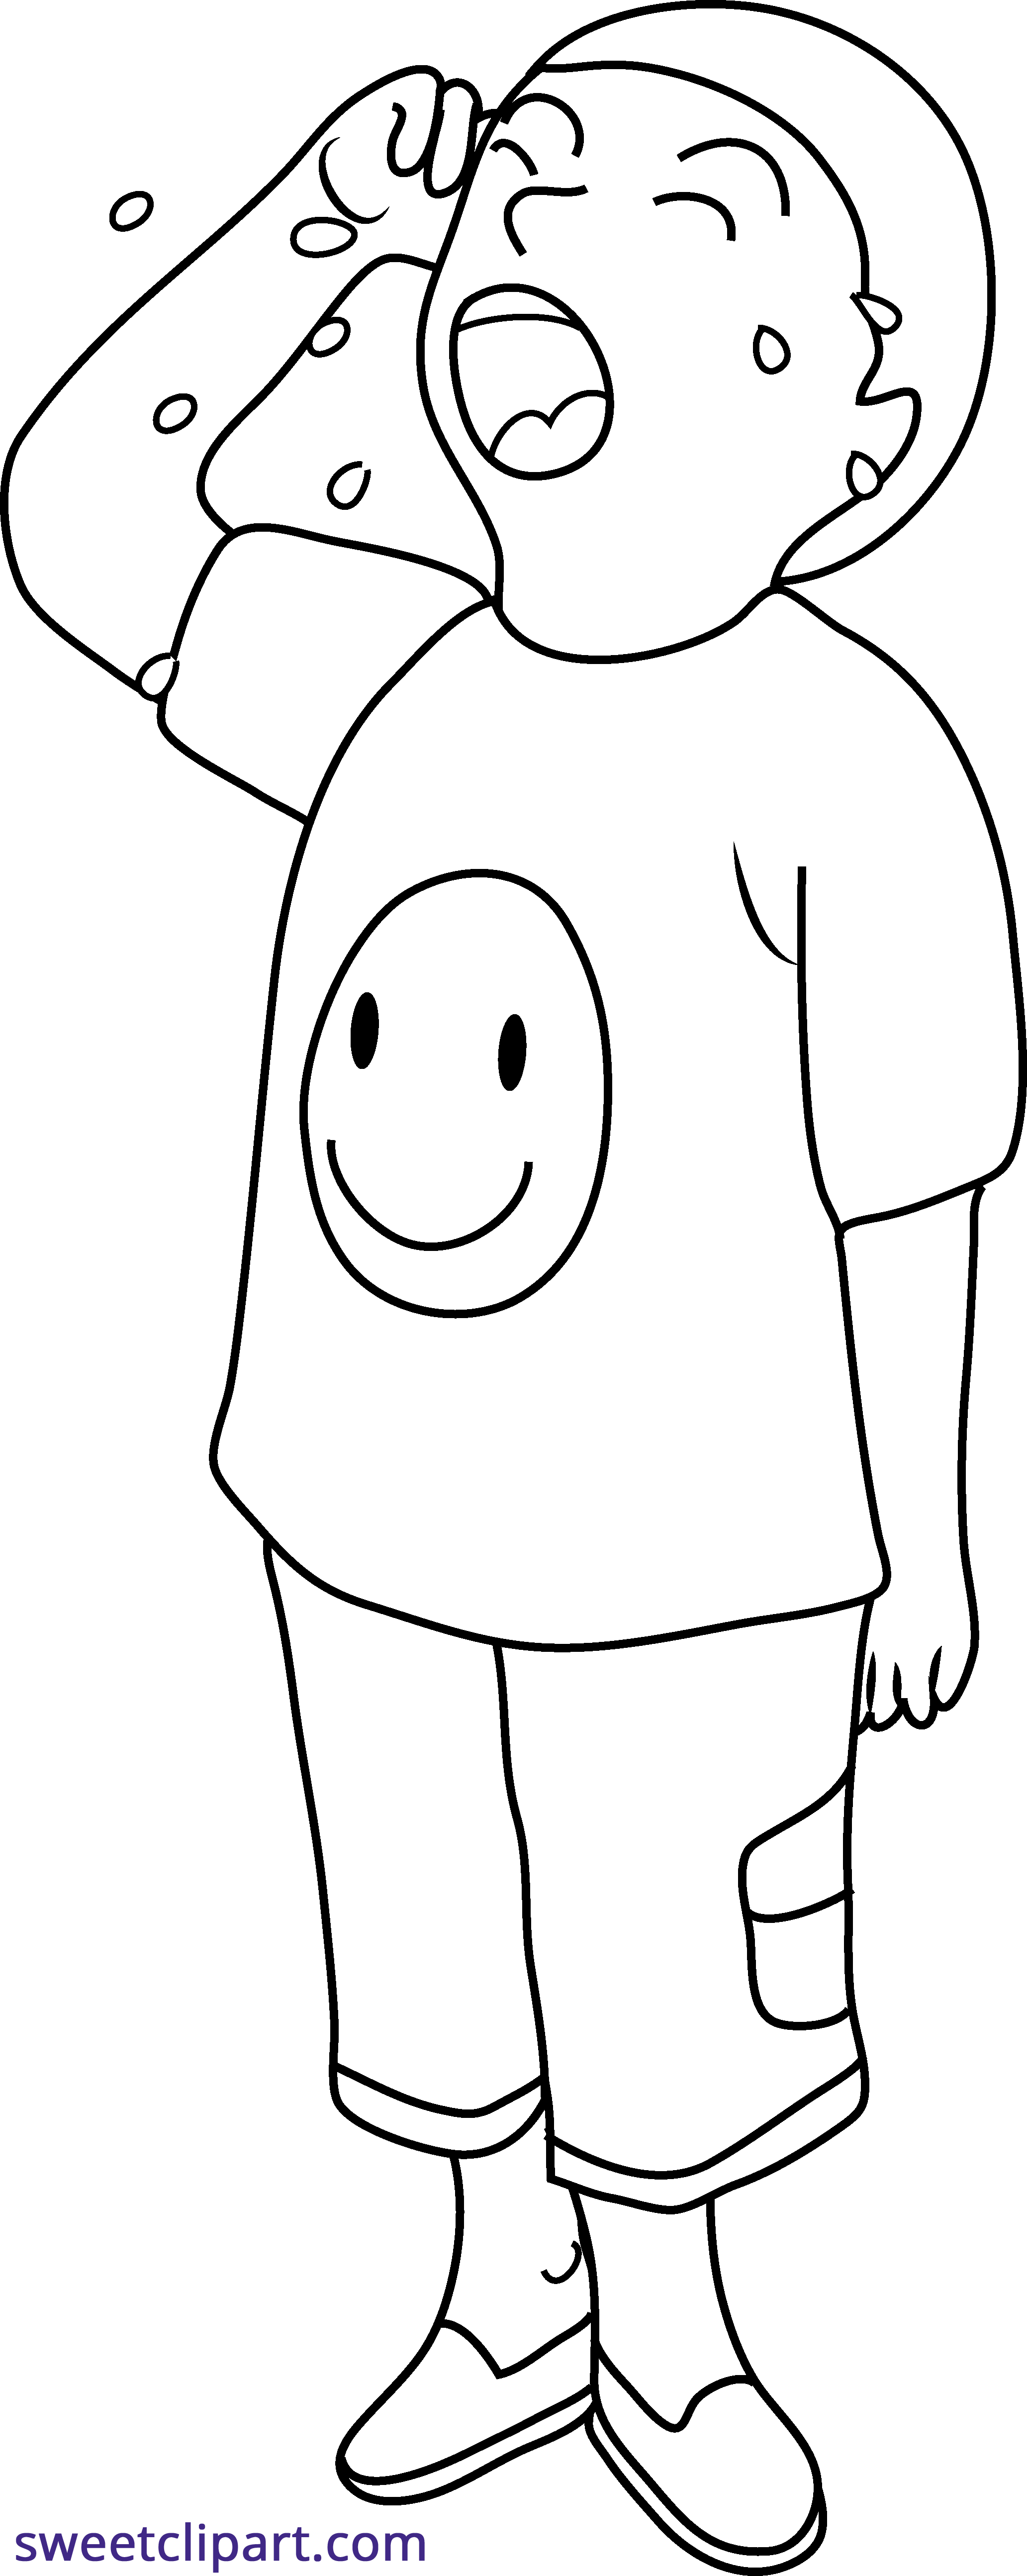 Cry clipart cry kid. Crying line art sweet